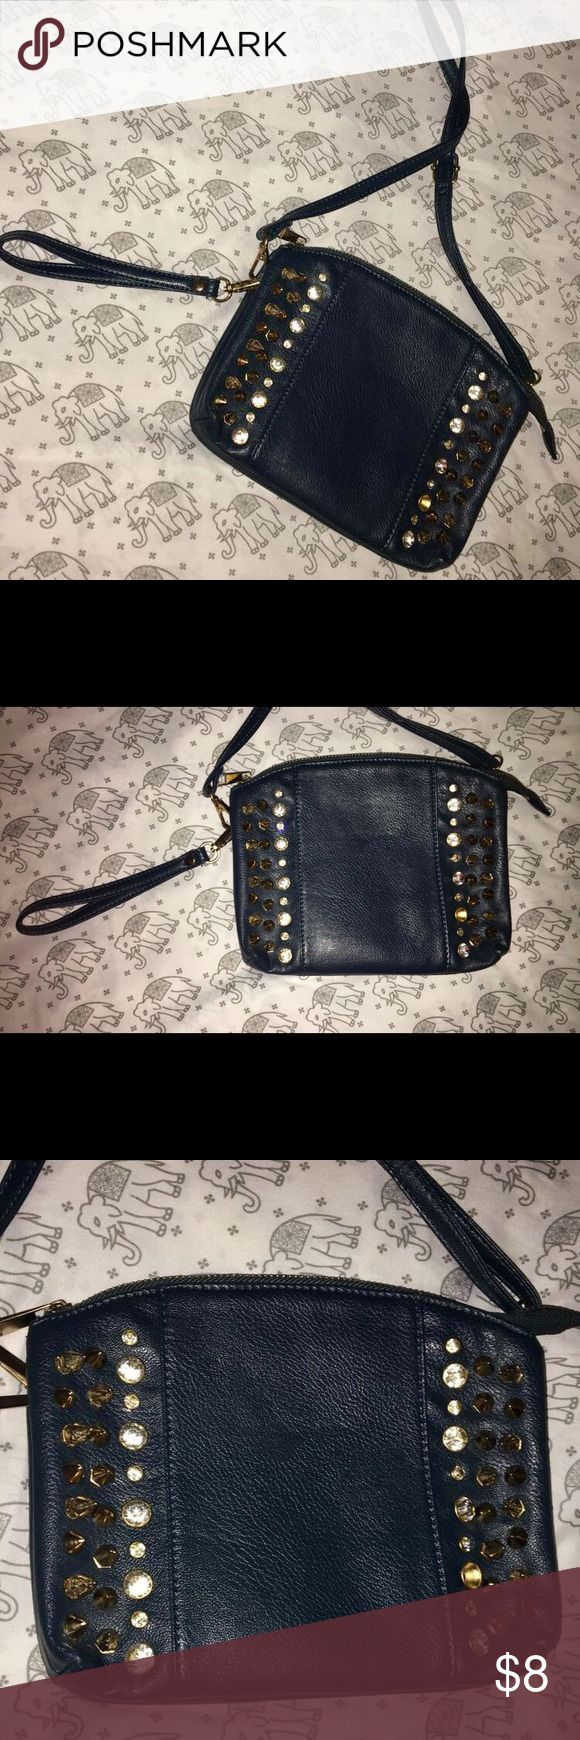 Hobby lobby craft bags - Dark Blue Crossbody Spiked And Jewel Encrusted Dark Blue Crossbody Purse One Jewel Is